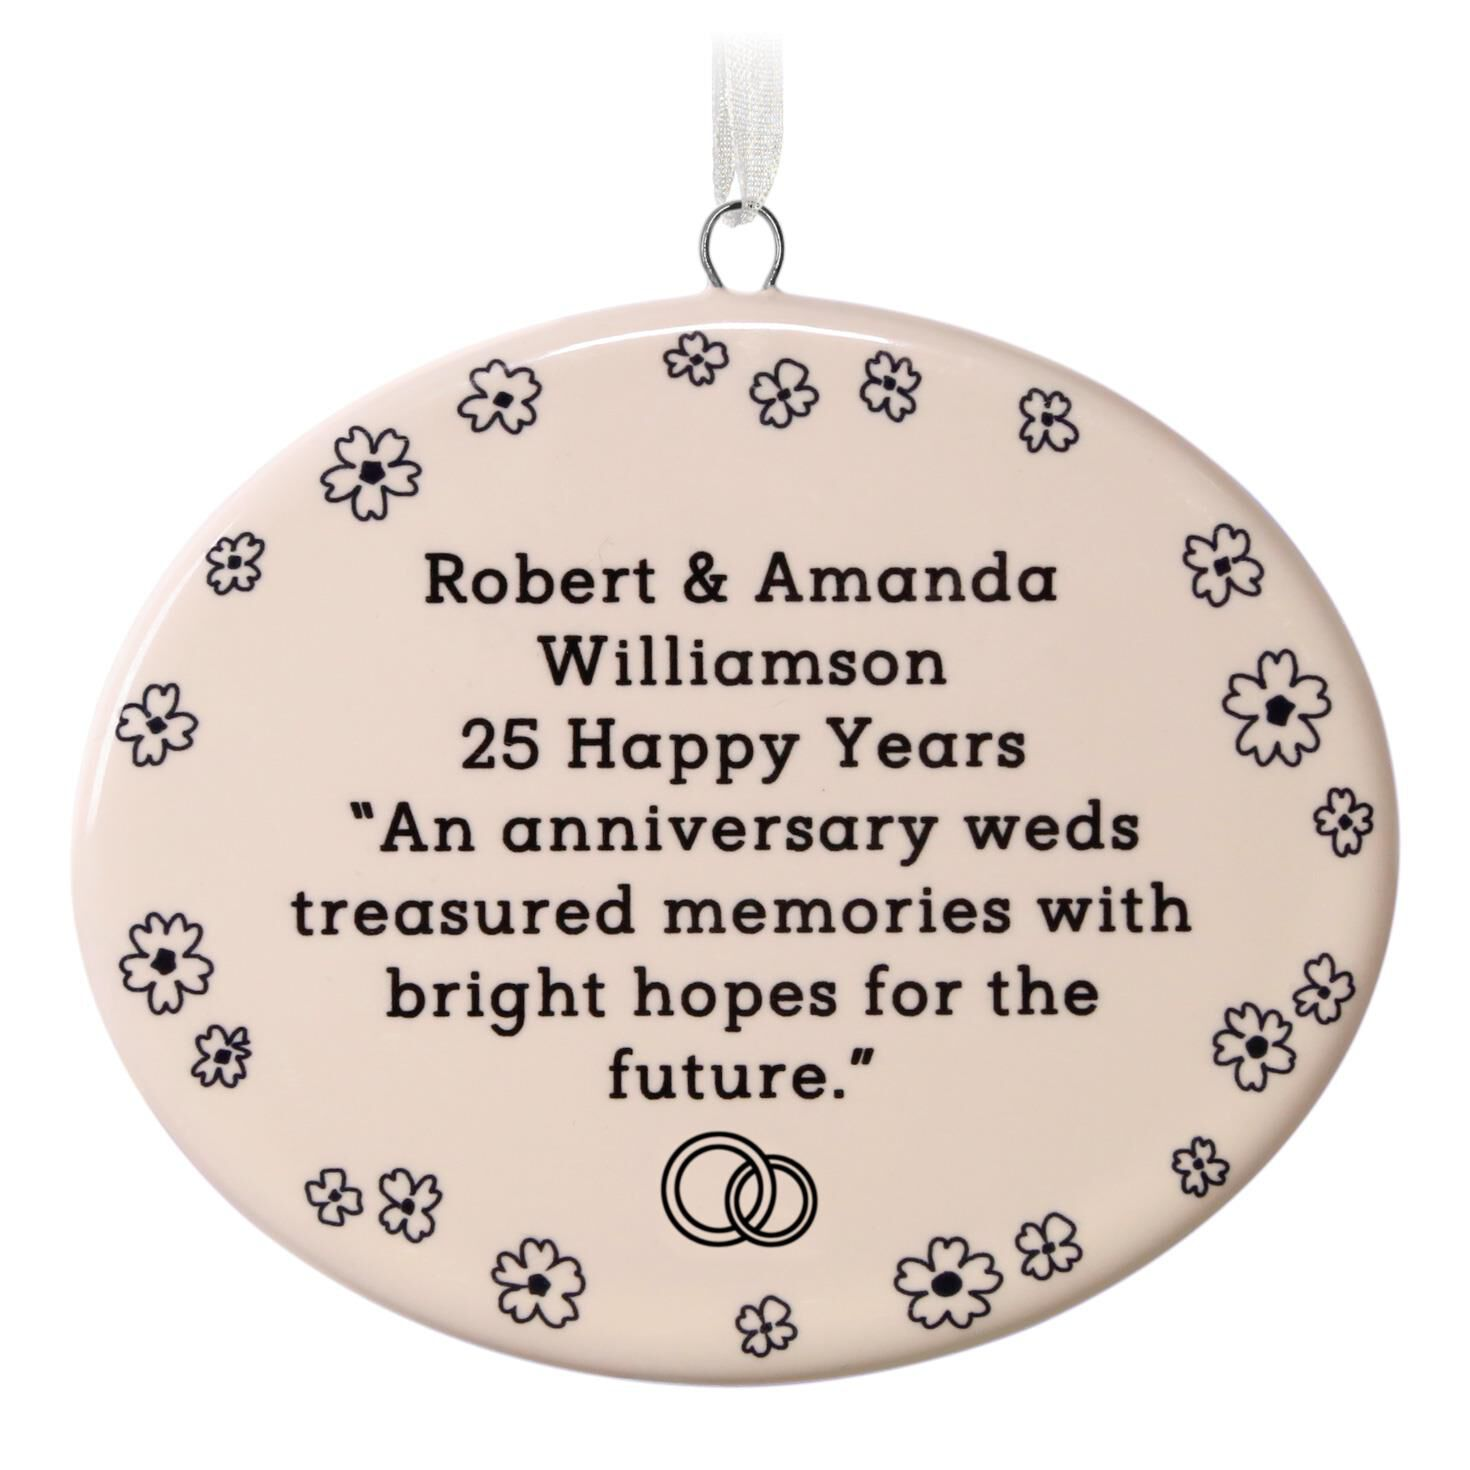 Ornaments with names on them - Ornaments With Names On Them 3